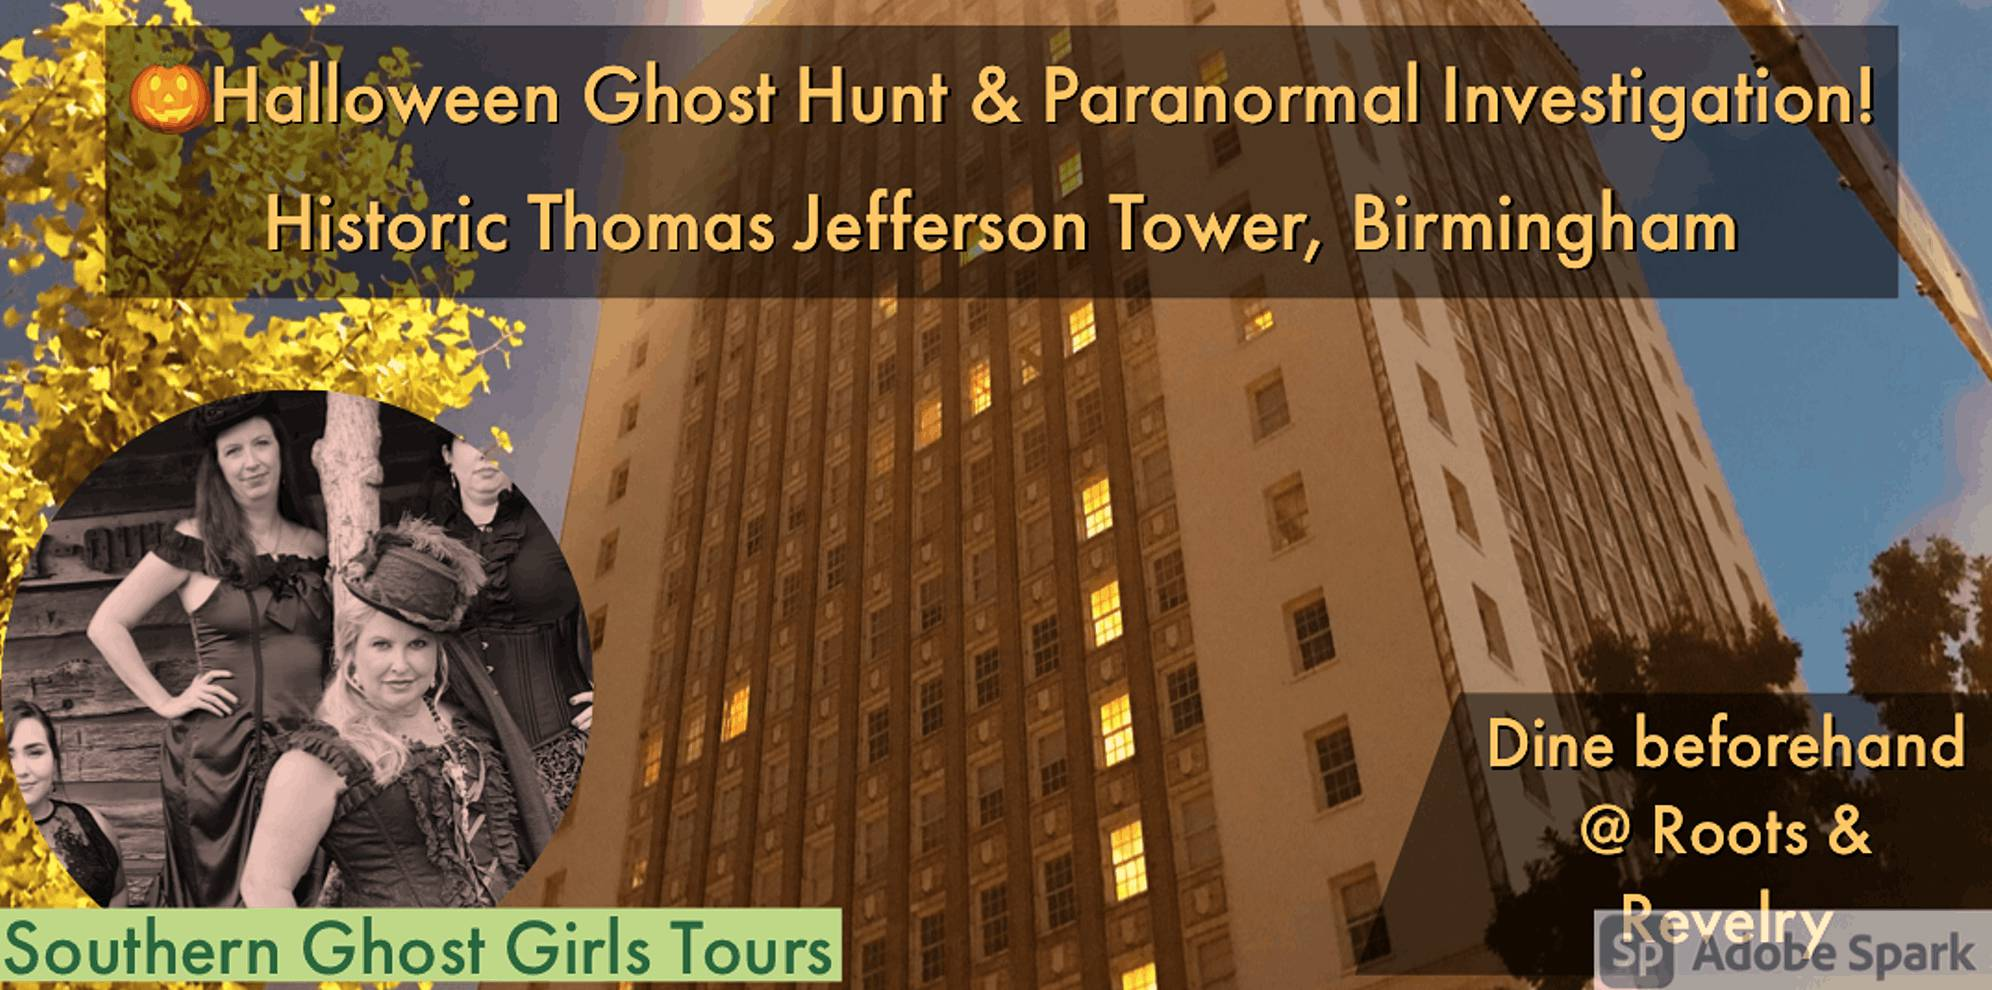 Halloween Ghost Hunt Paranormal Investigation